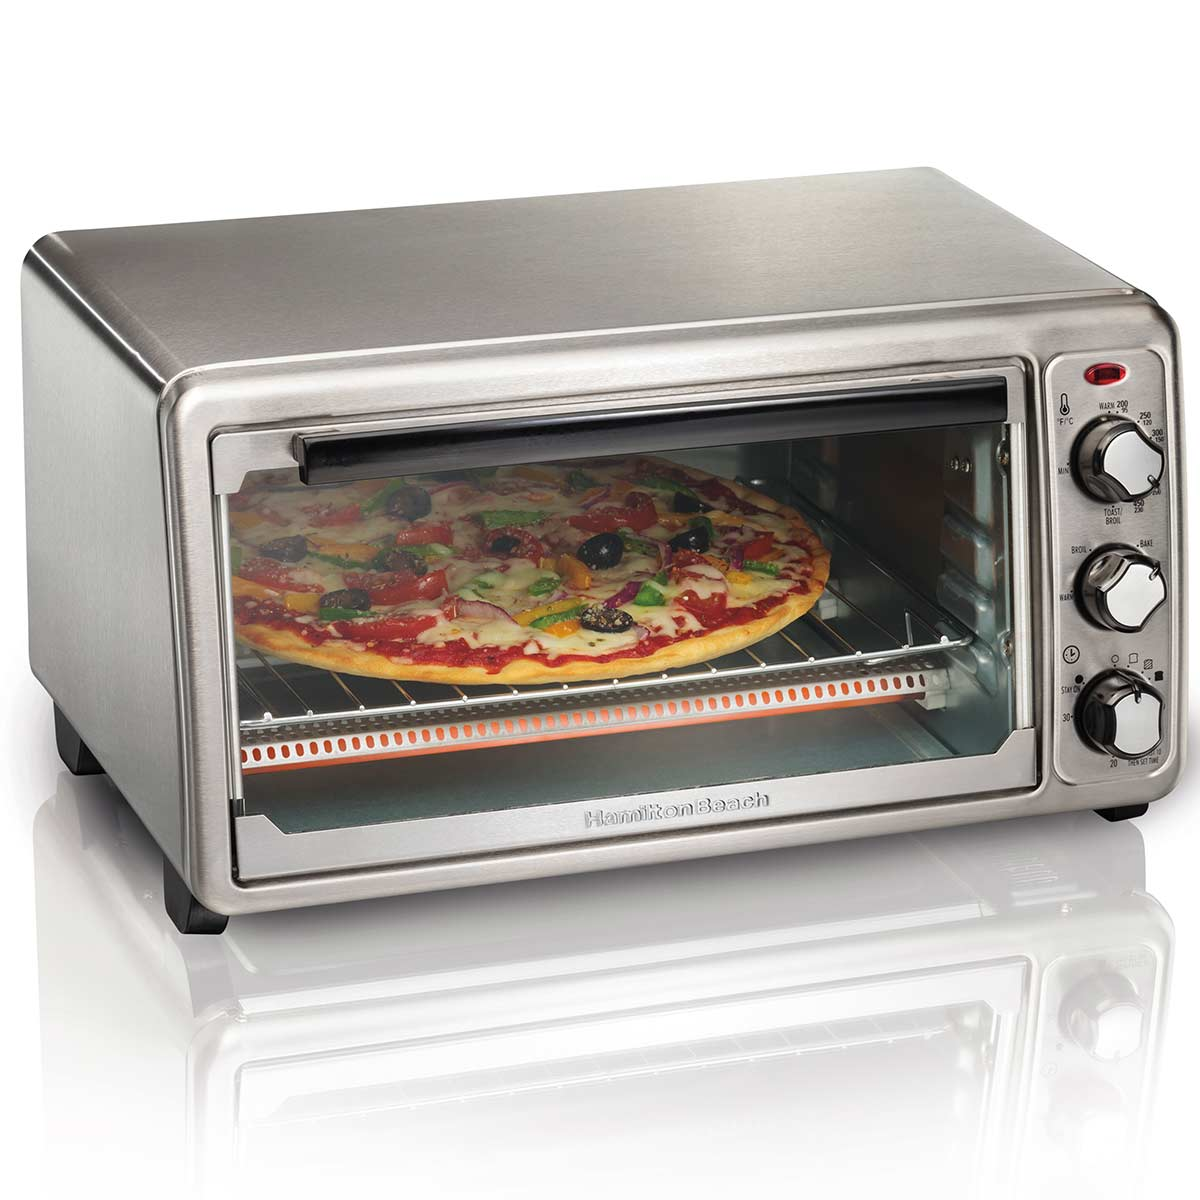 Stainless Steel 6 Slice Toaster Oven (31411)